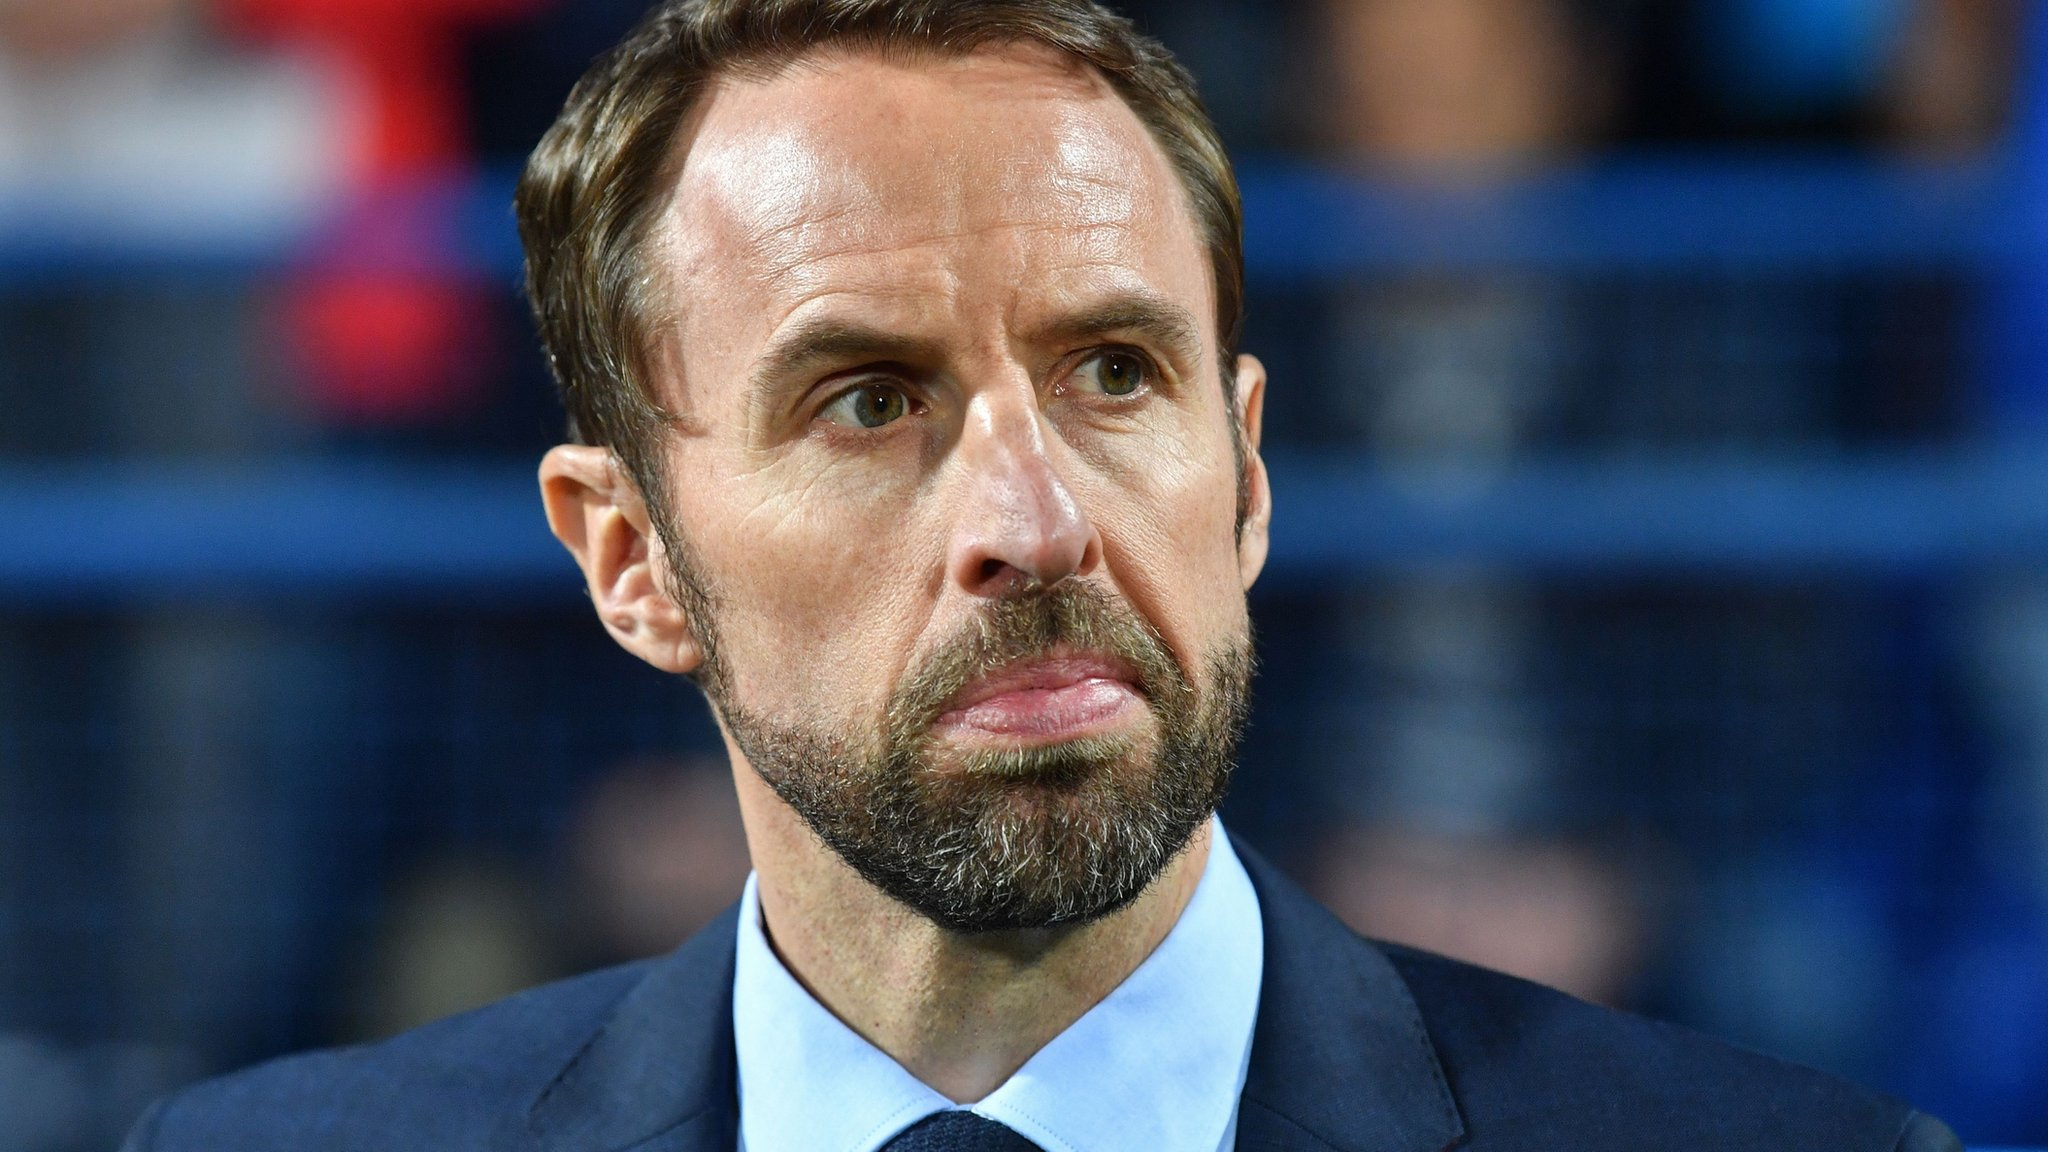 Lack of England-qualified Premier League starters must change, says Southgate